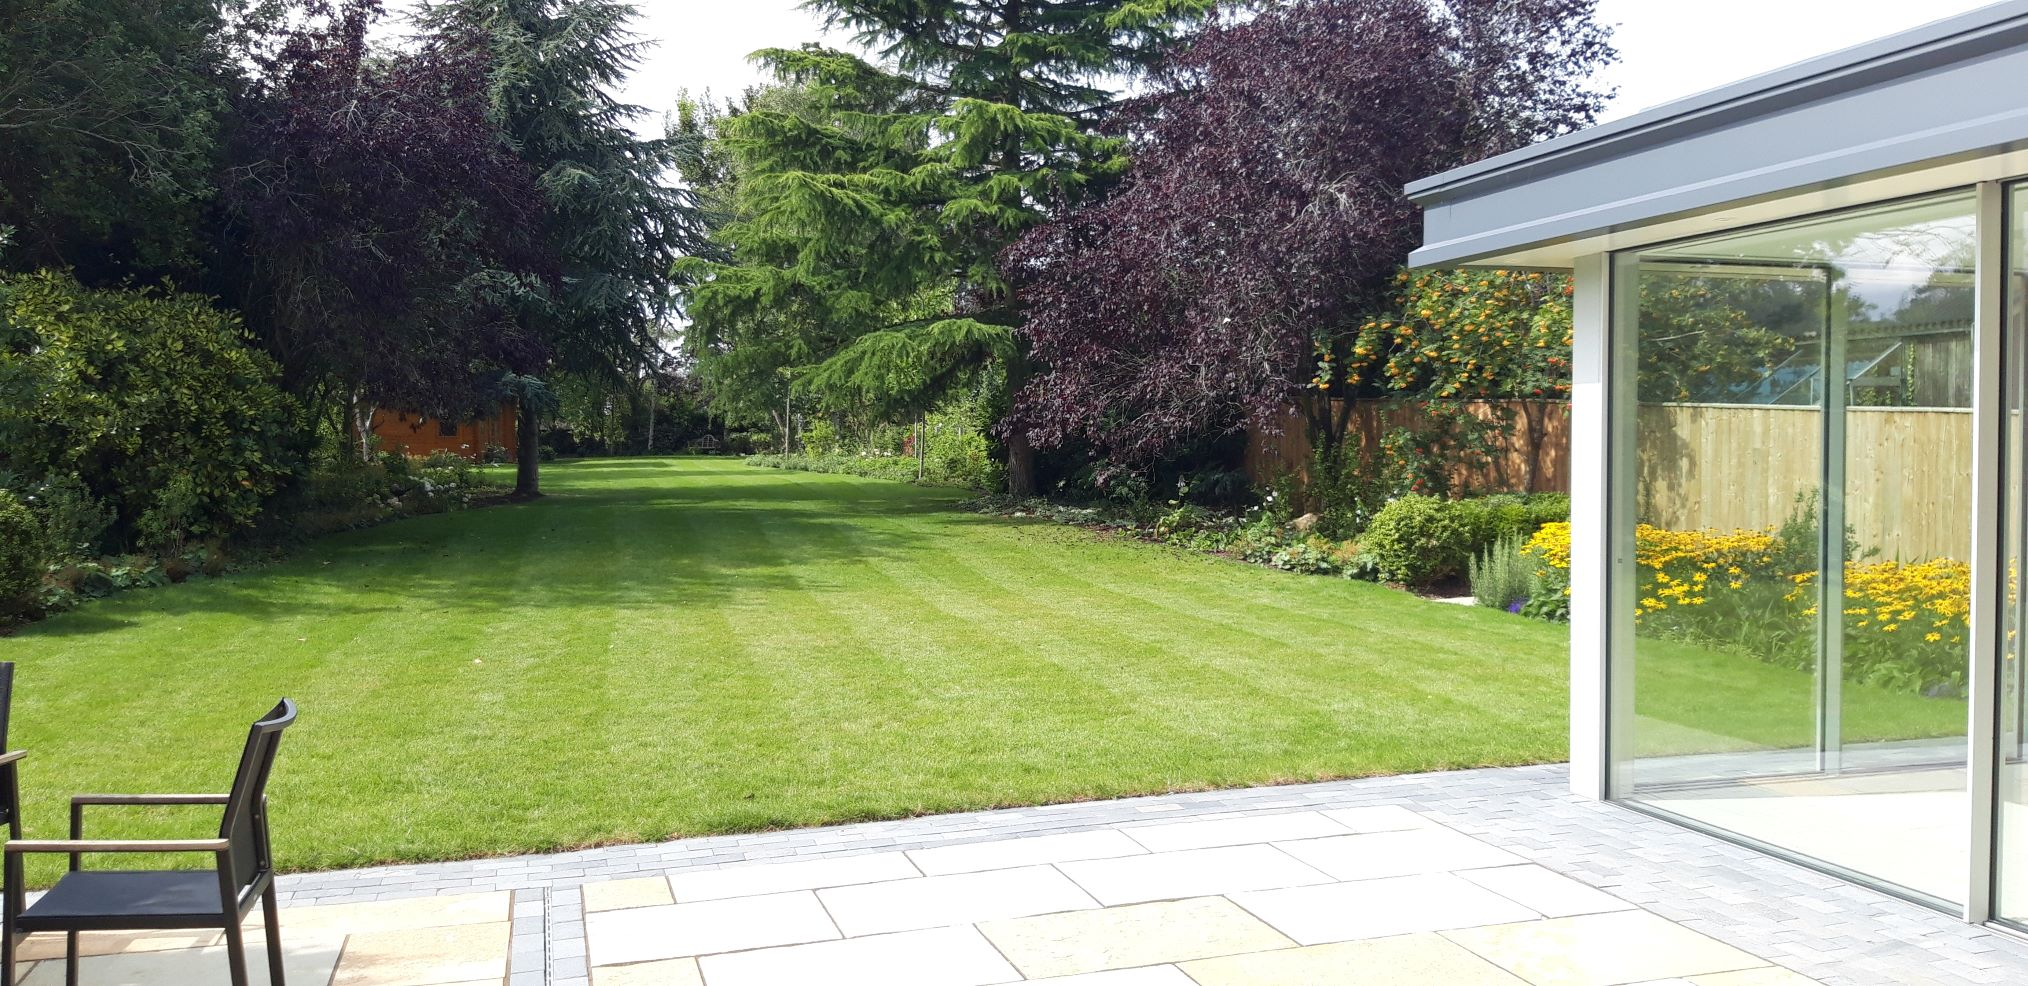 Finished domestic garden with new lawn